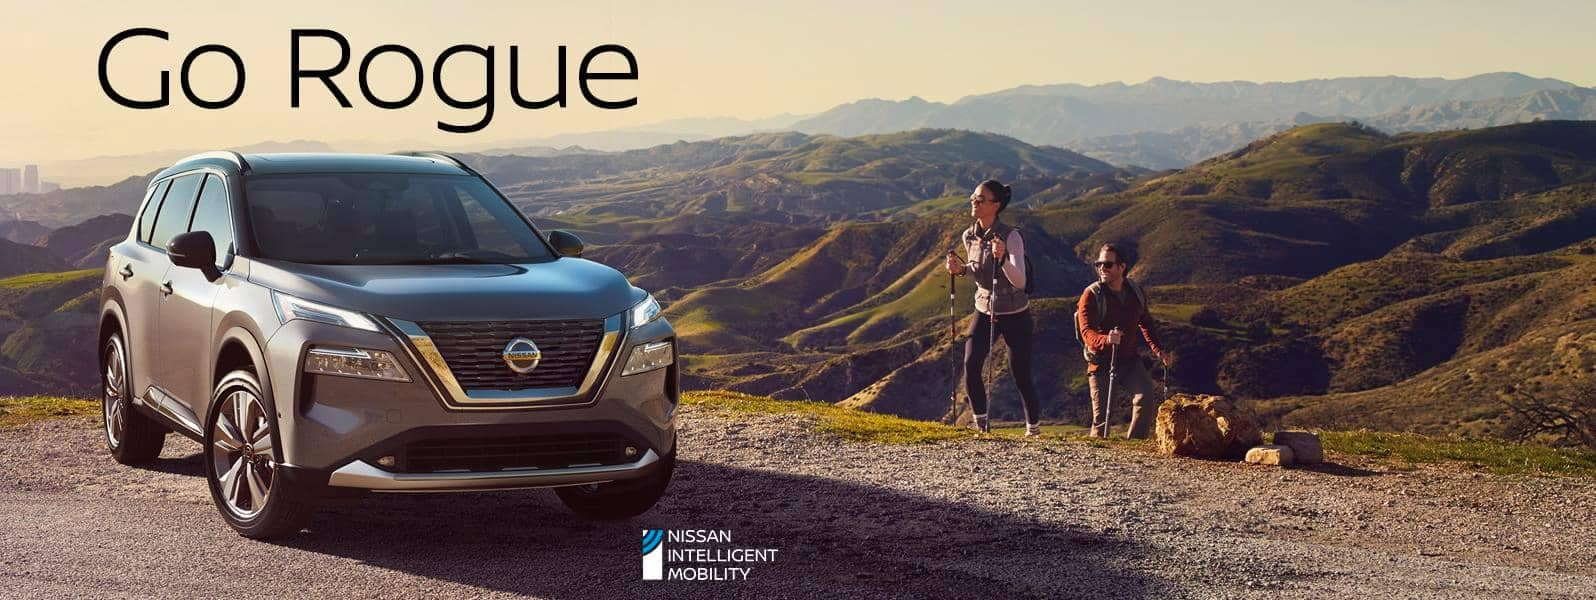 All-New 2021 Nissan Rogue Parked on a Hiilltop